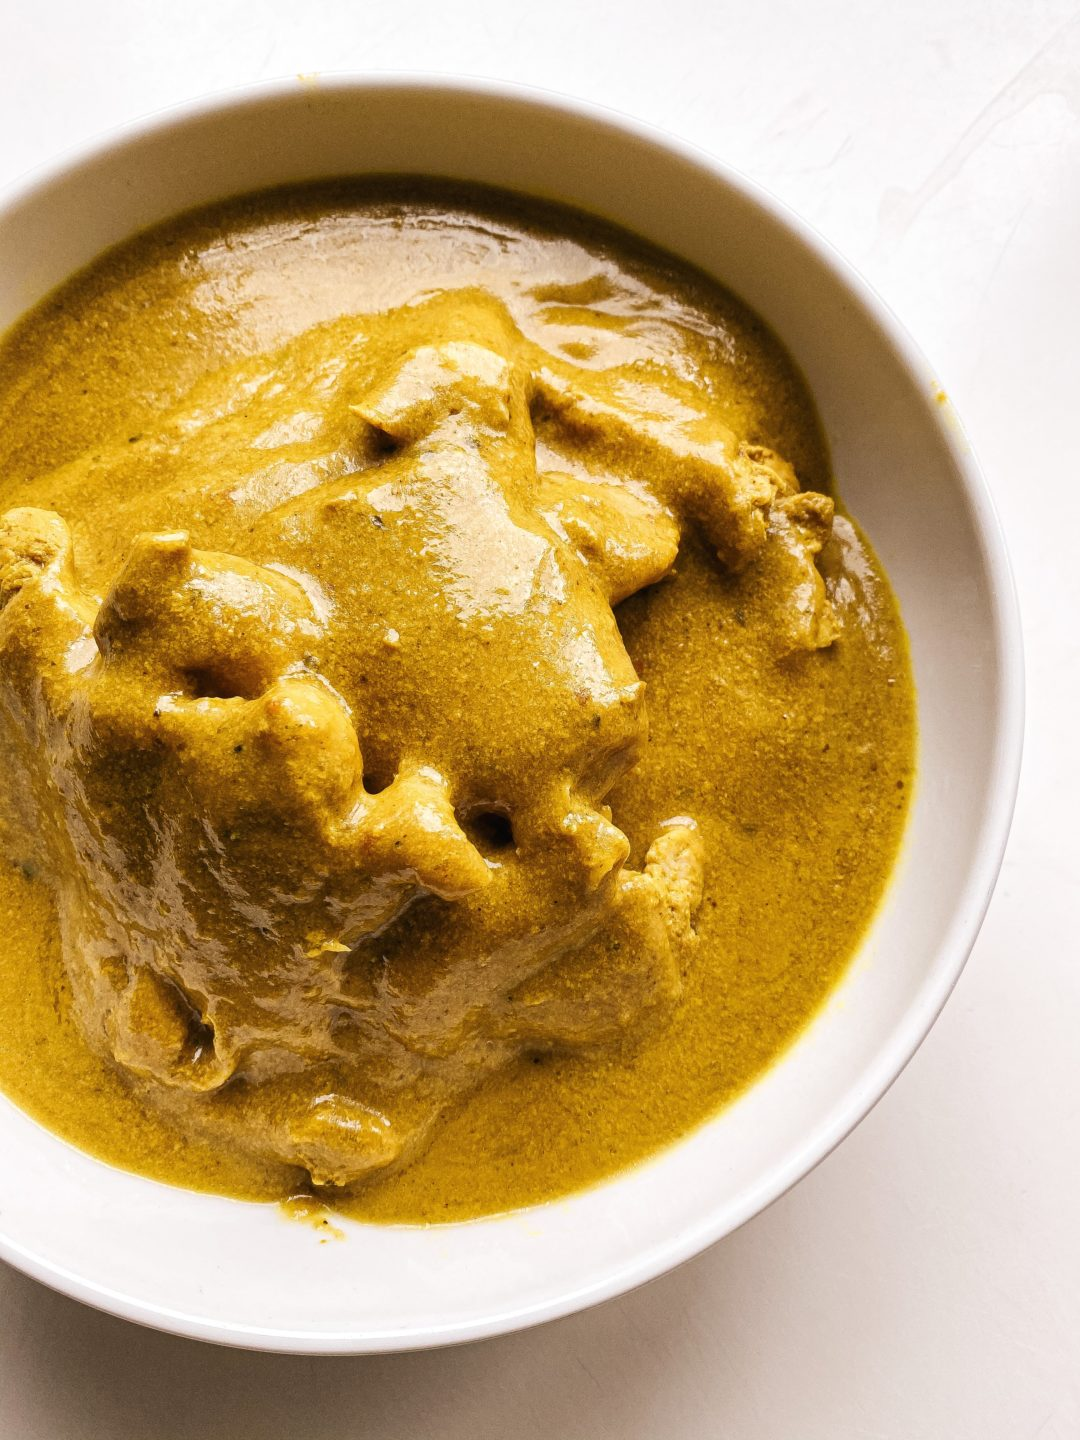 POLLO AL CURRY FIT ¡BRUTAL!